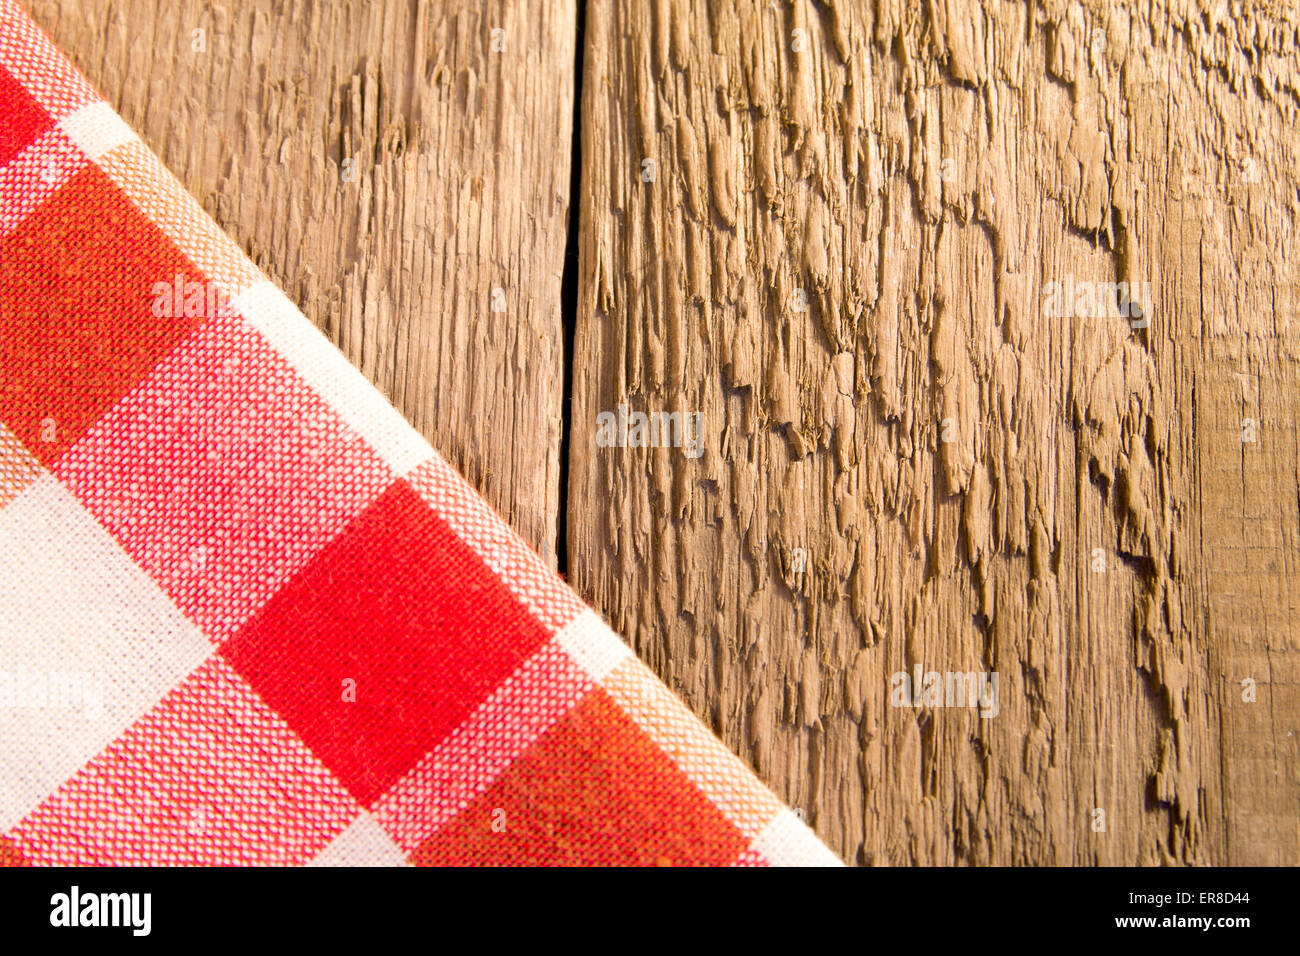 Checkered napkin on rustic wooden background (table, texture) - Stock Image